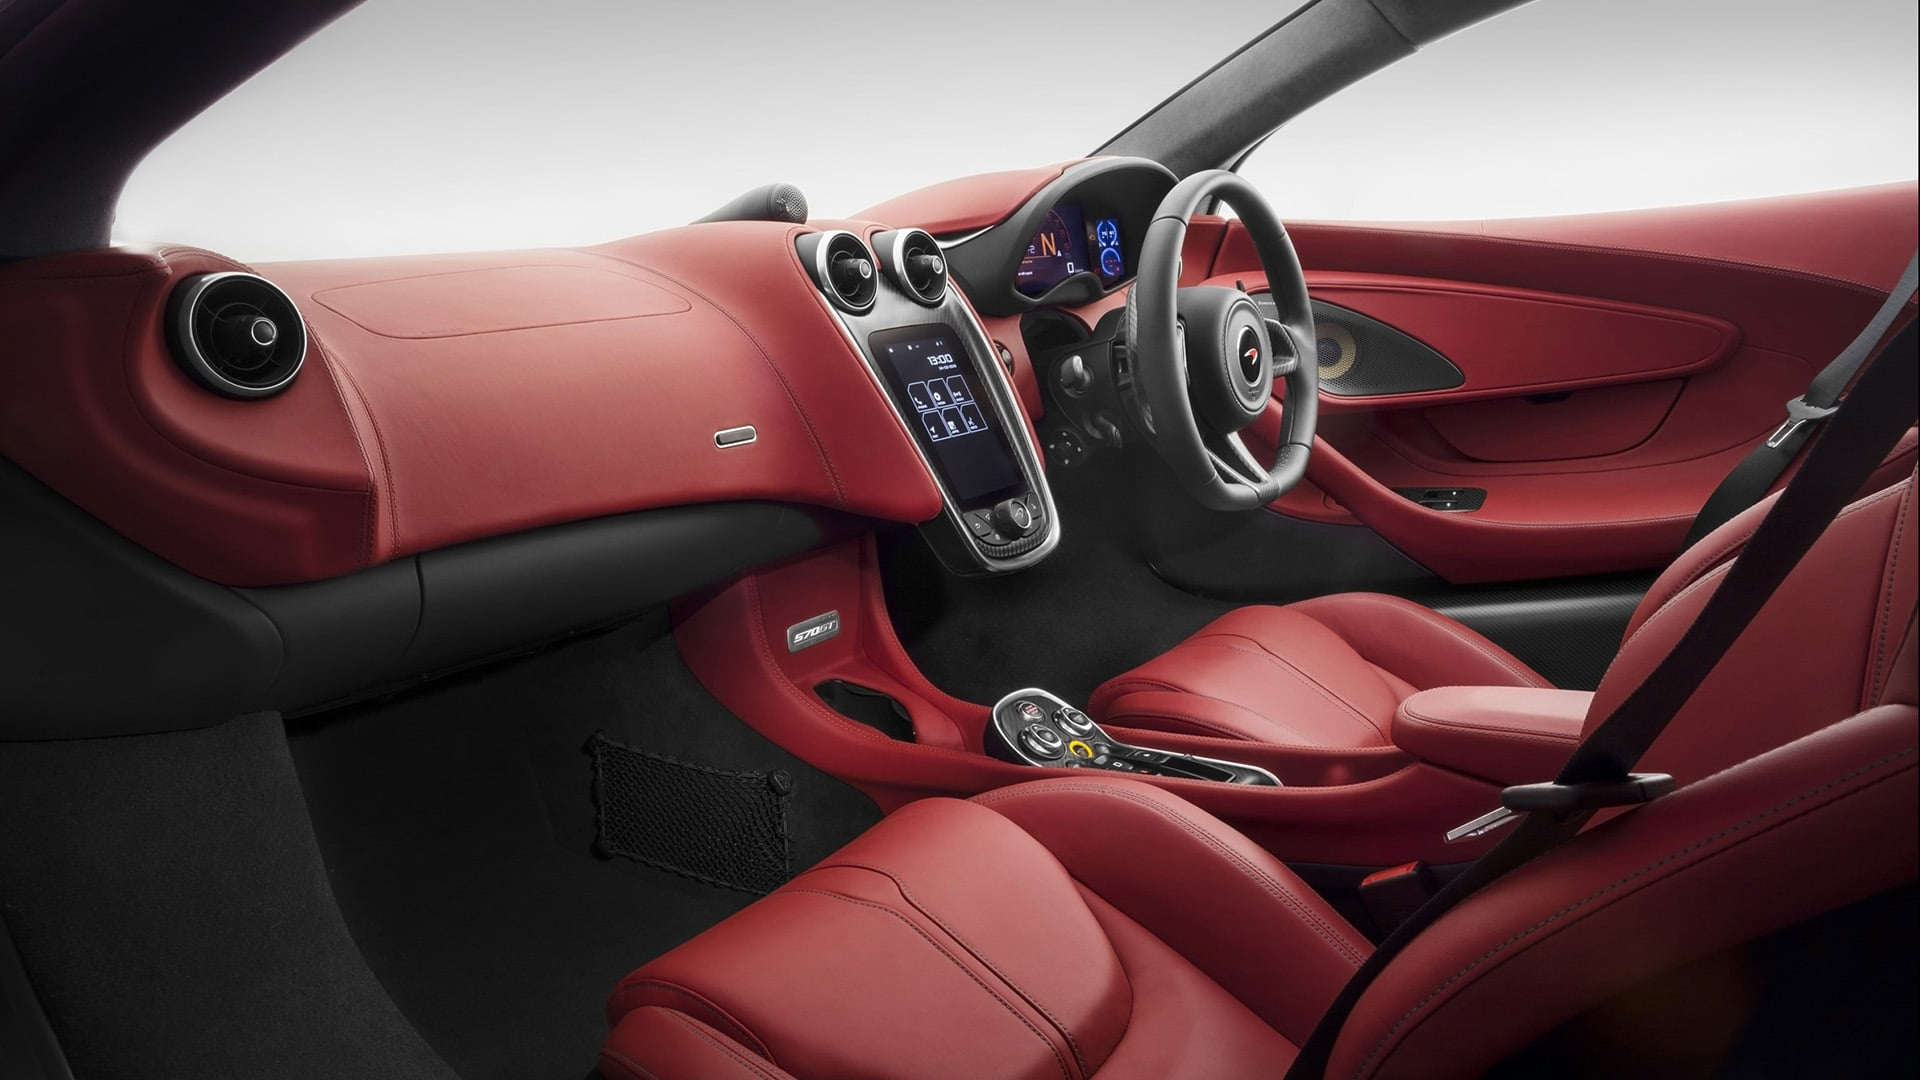 2016 McLaren 570GT interior red leather 1920x1080 wallpaper